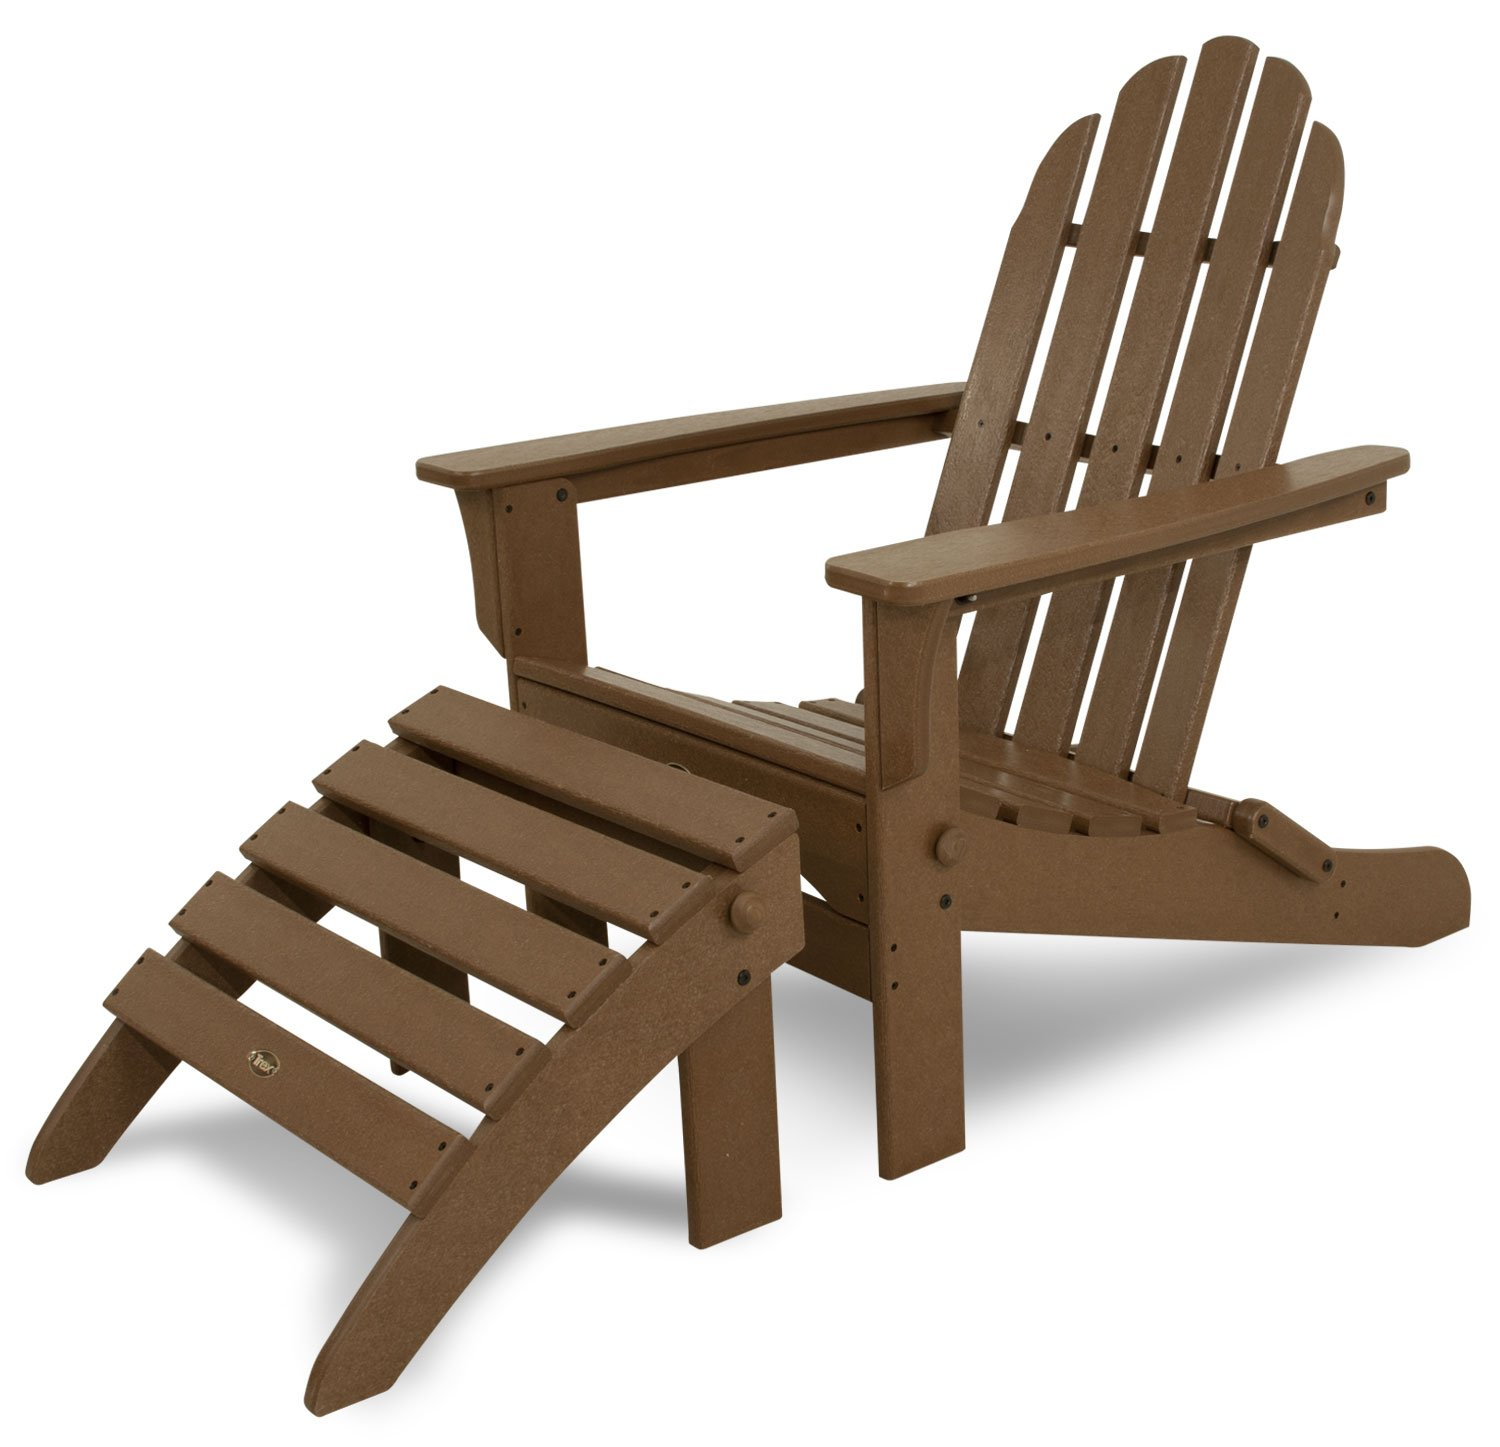 Amazon.com : Trex Outdoor Furniture TXS116 1 TH Cape Cod 2 Piece Folding  Adirondack Seating Set, Tree House : Adirondack Chairs : Garden U0026 Outdoor